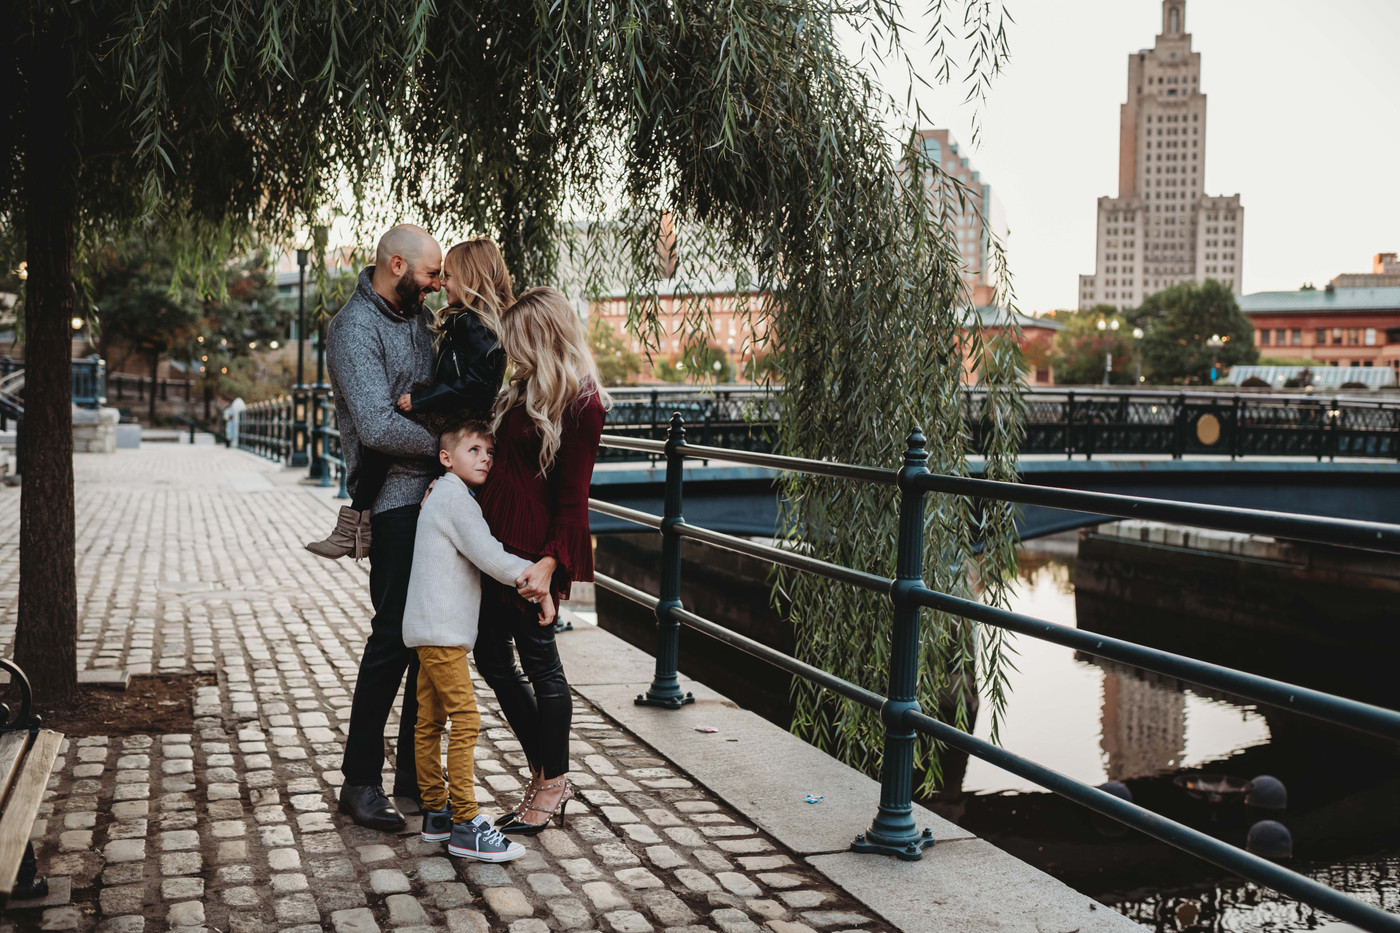 Urban Family Sessions at the Riverwalk in Providence, Rhode Island